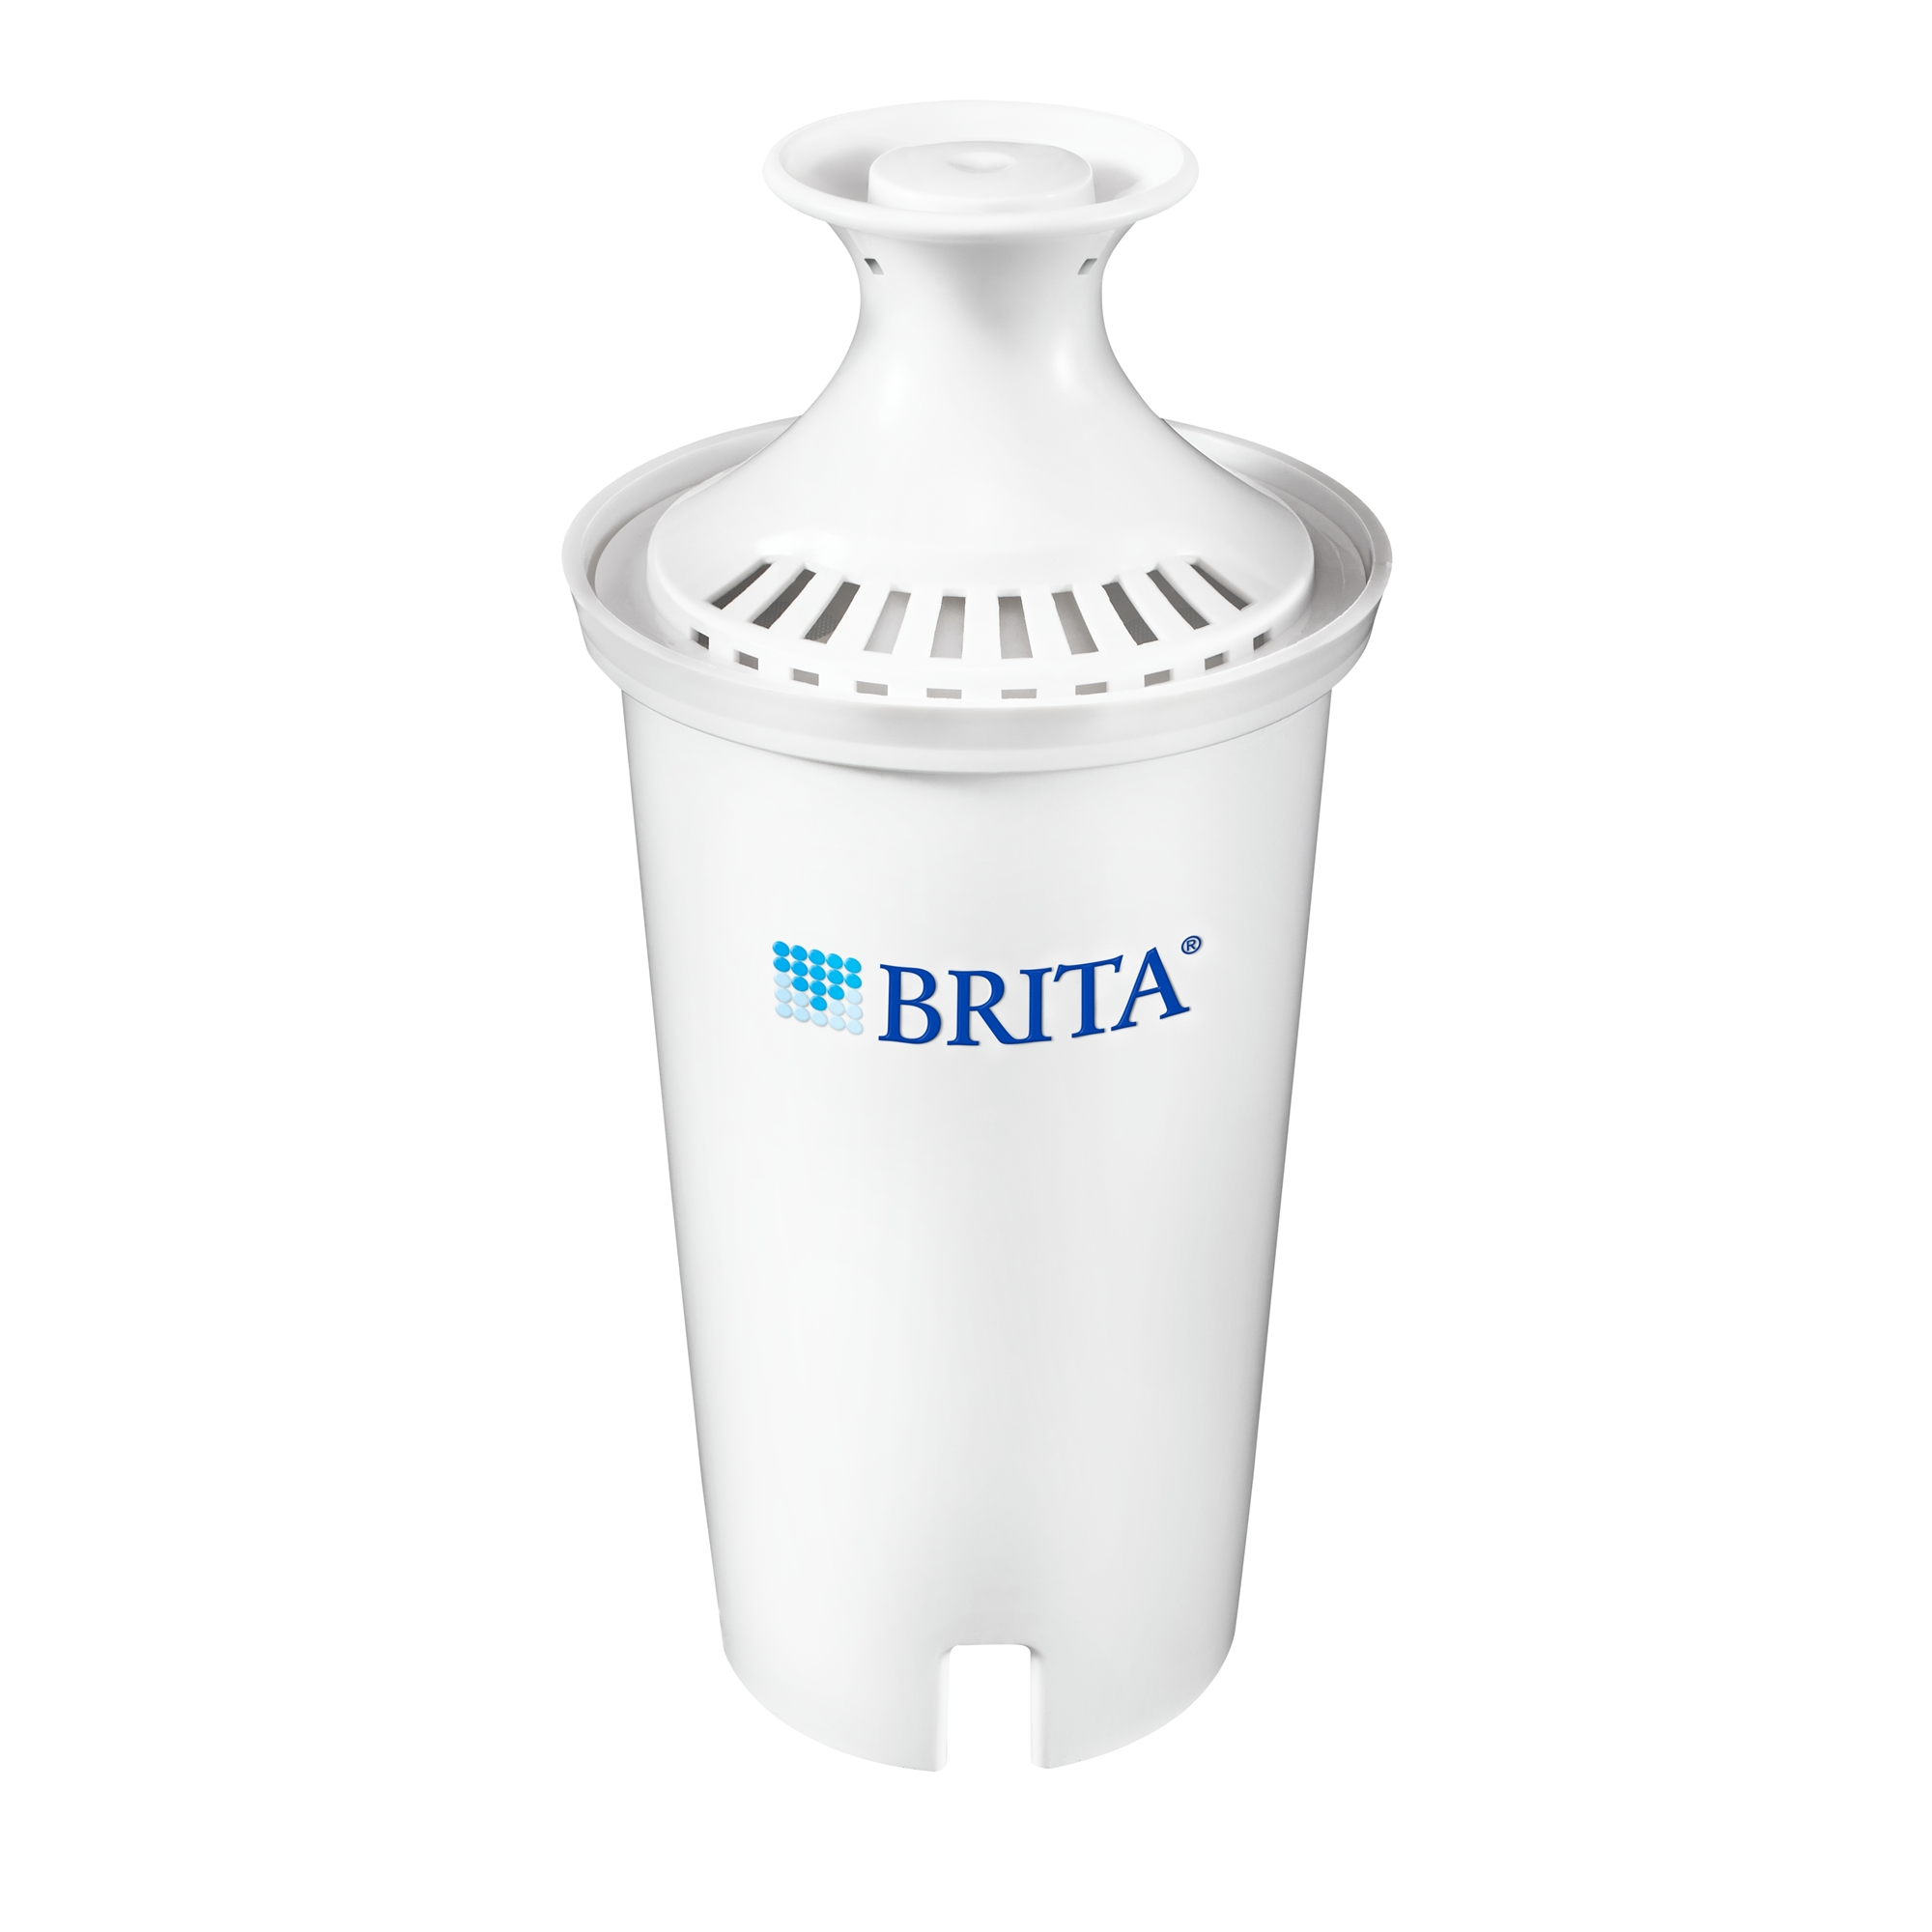 Brita Standard Replacement Filters for Pitchers and Dispensers BPA Free 1 Count by The Clorox Company